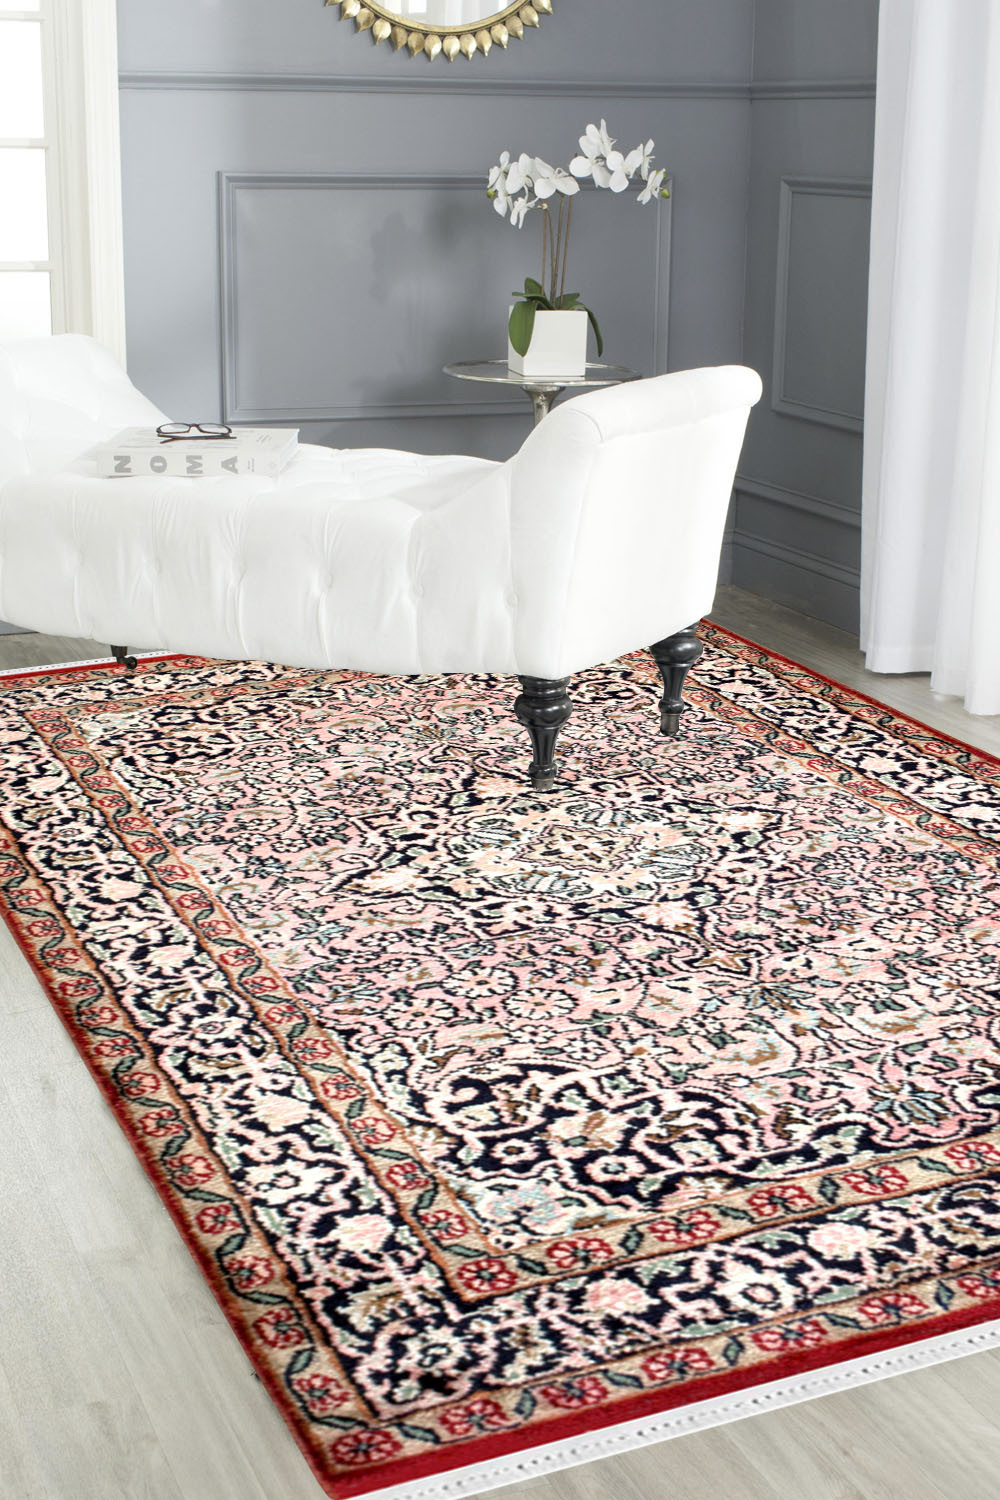 2x3 Salmon Kashan Carpet In Pink And Ivory Color At